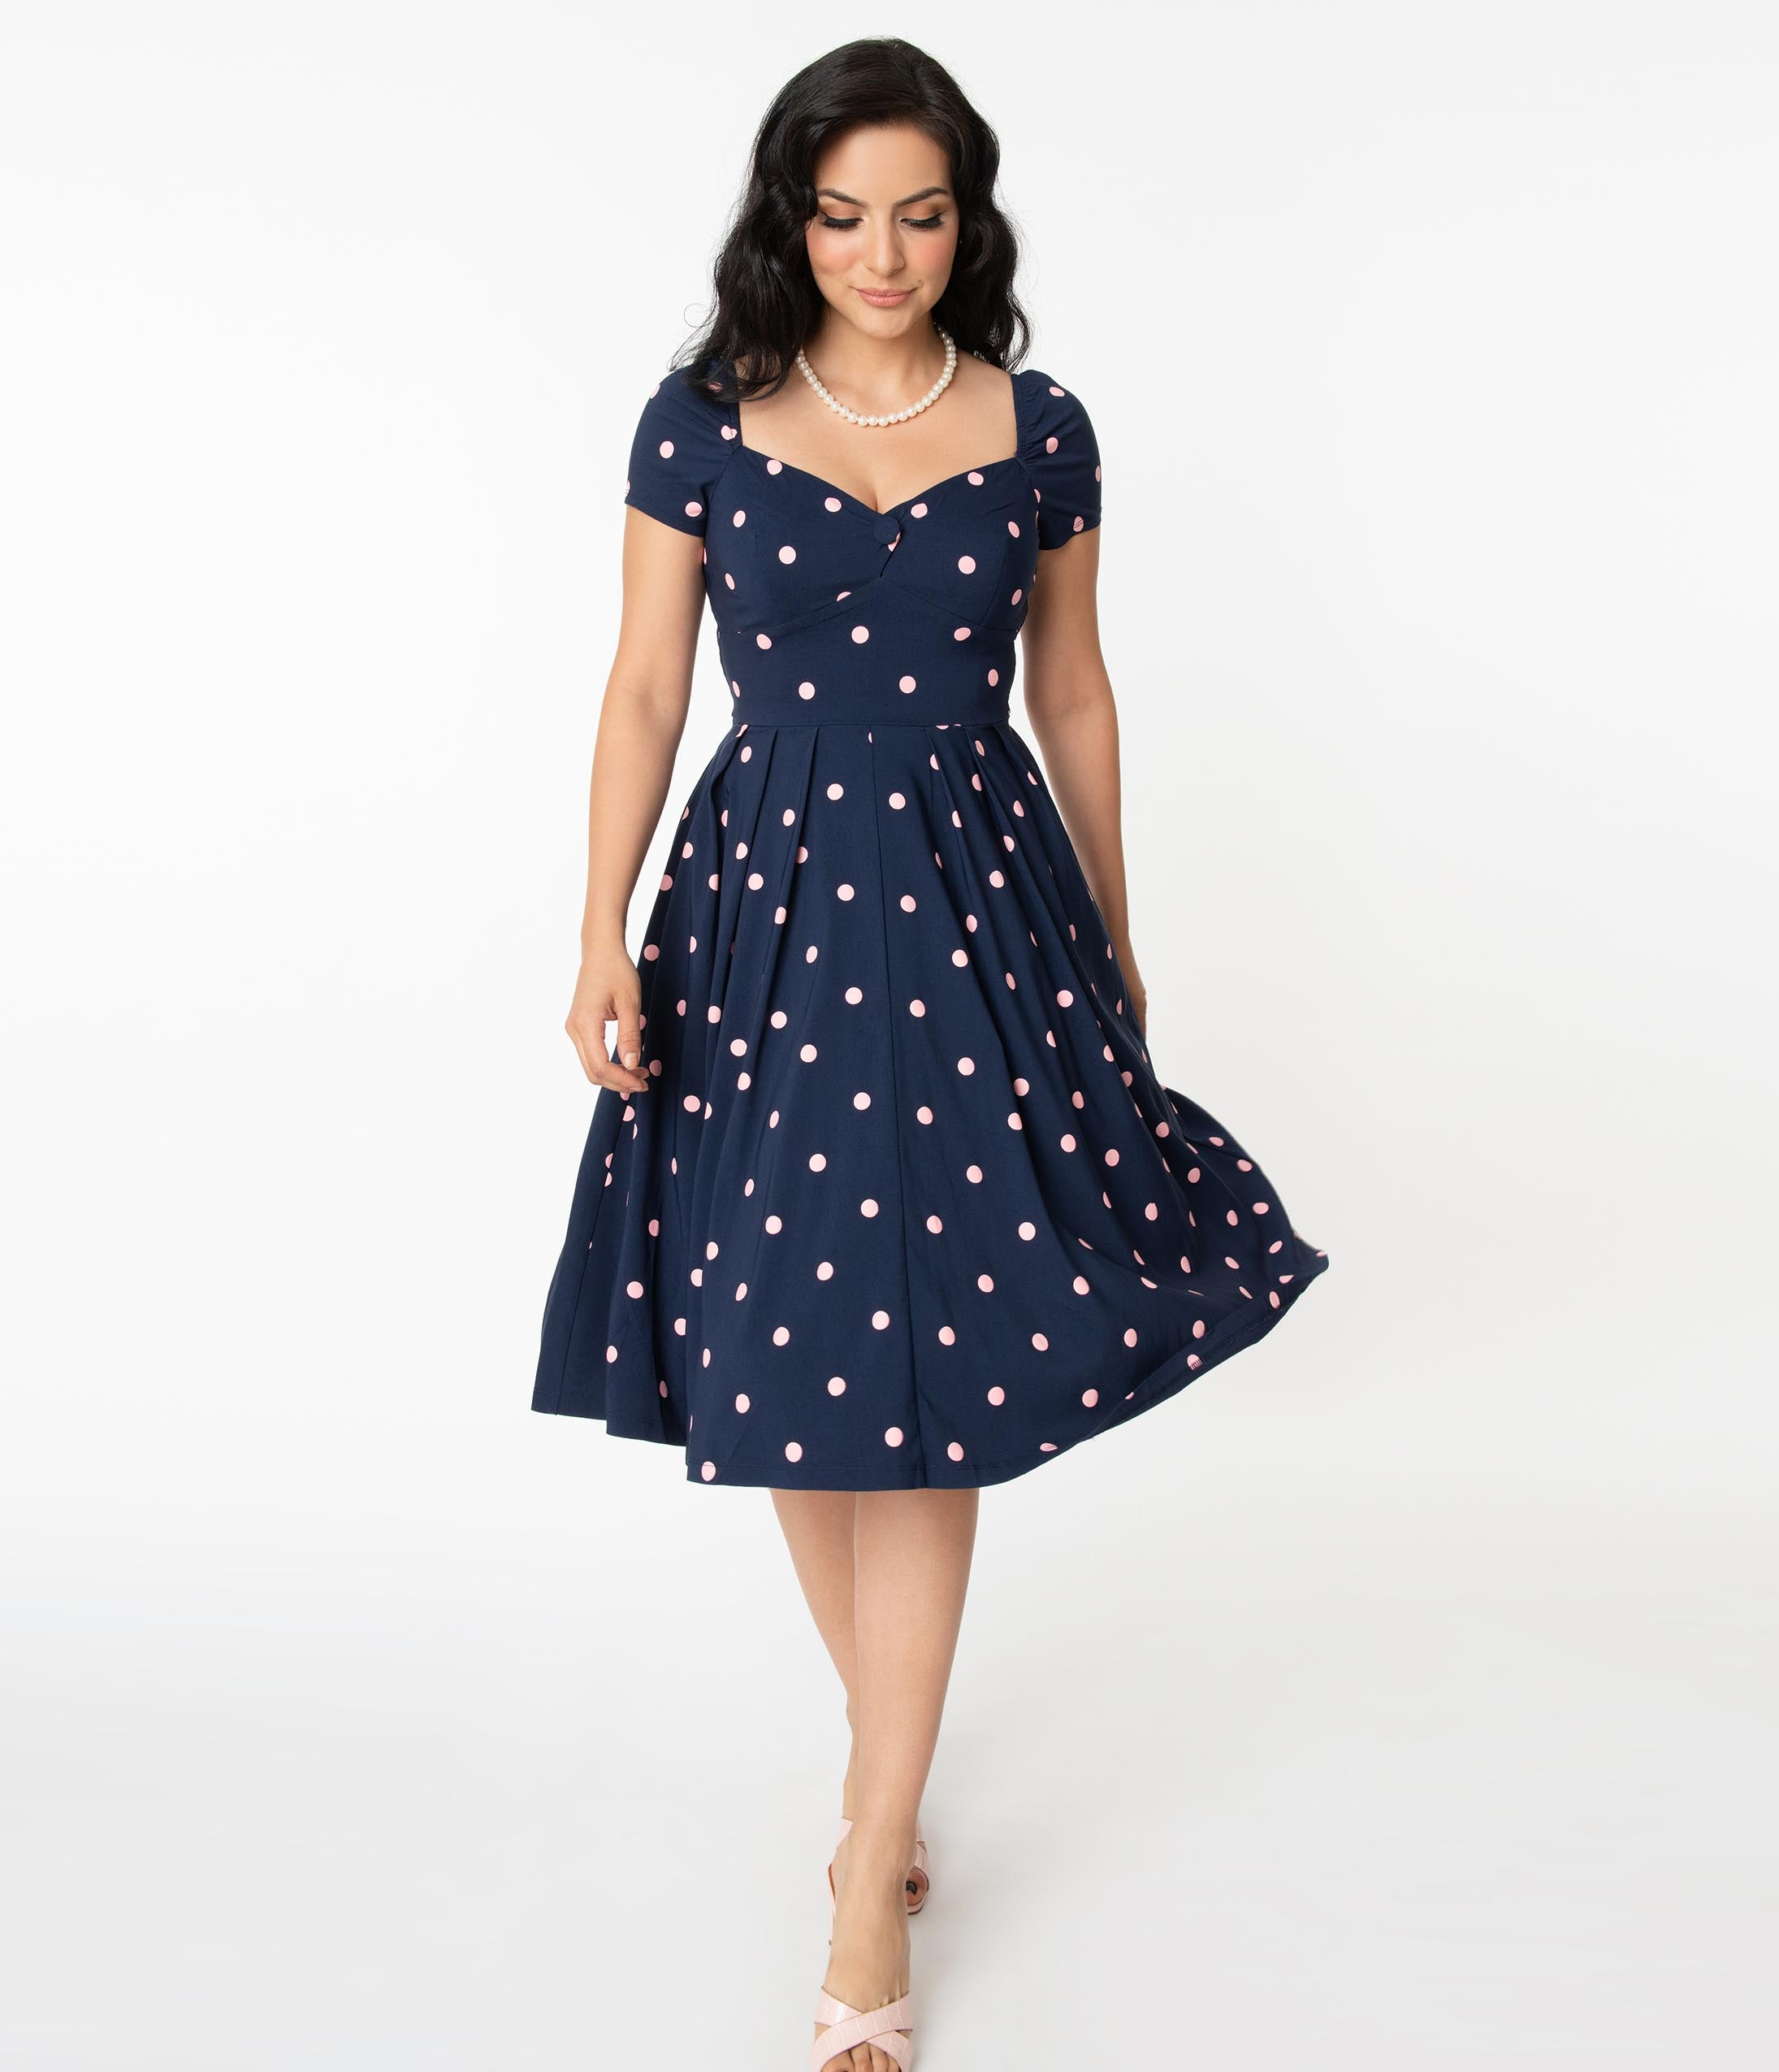 1950s Inspired Fashion: Recreate the Look Unique Vintage 1950S Navy  Pink Polka Dot Sweetheart Midge Swing Dress $78.00 AT vintagedancer.com